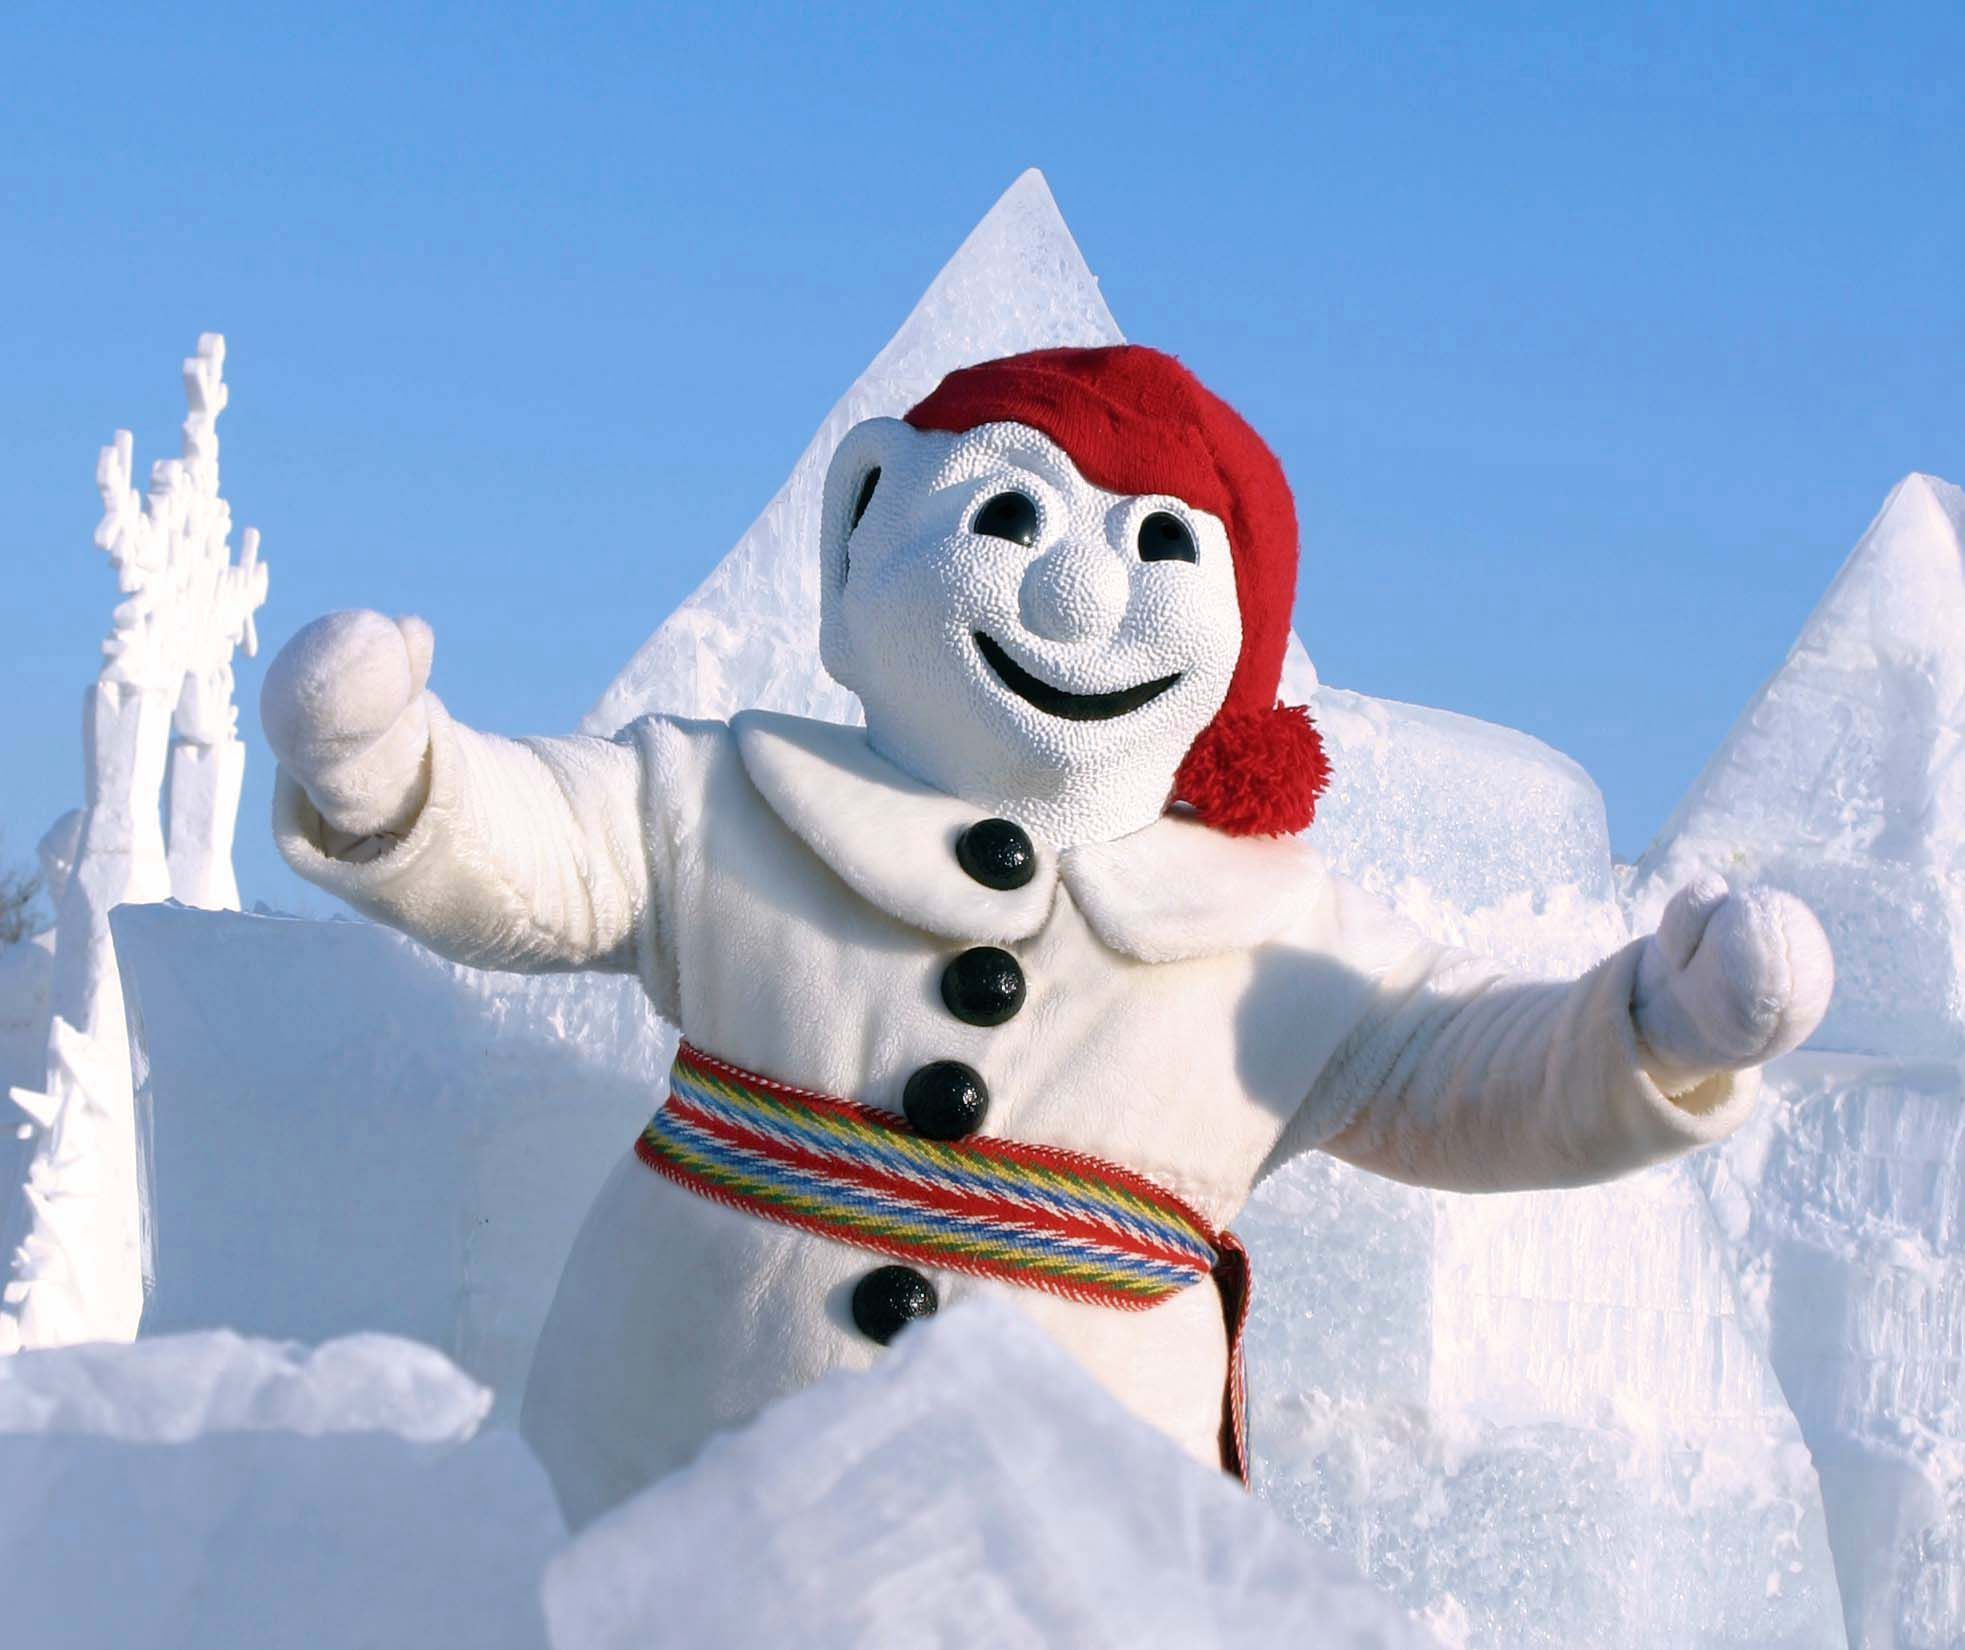 Québec Winter Carnival: With an outdoor amusement park, ice slides ...